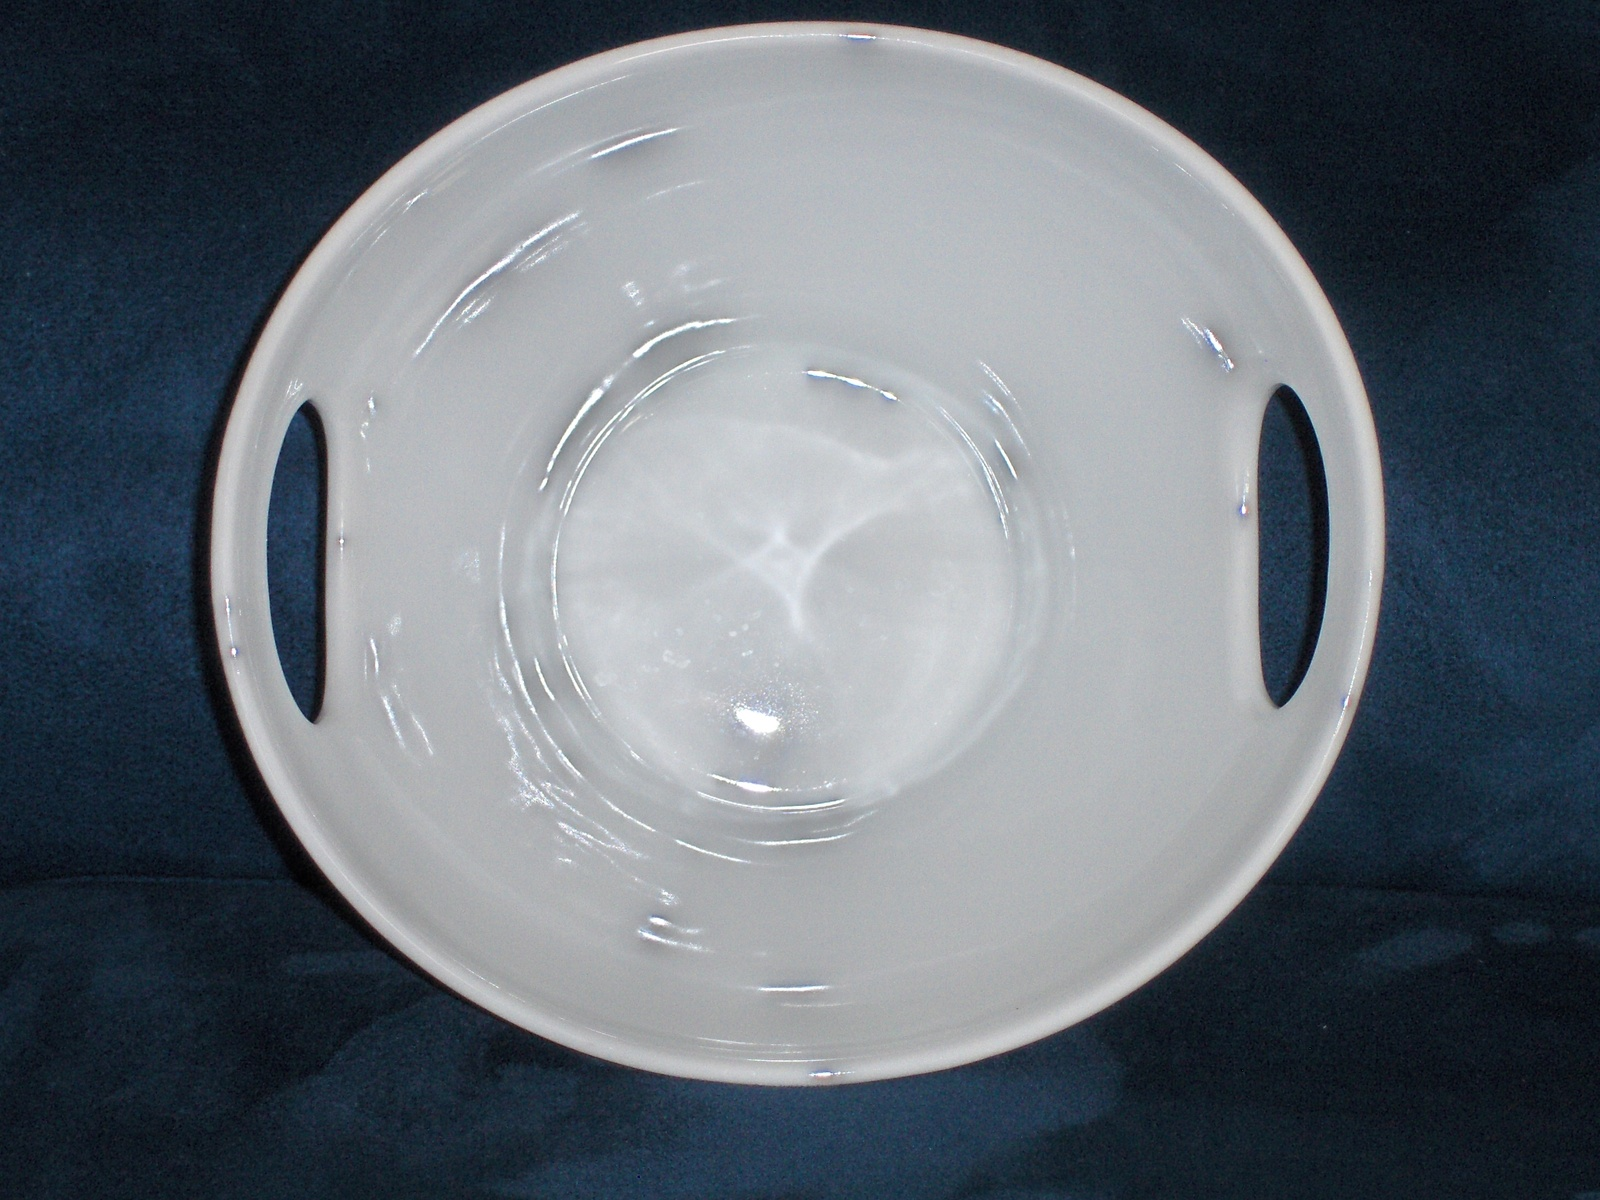 ... Gorham White Bowl Classically Modern Tableware 1831 ... : gorham dinnerware - pezcame.com